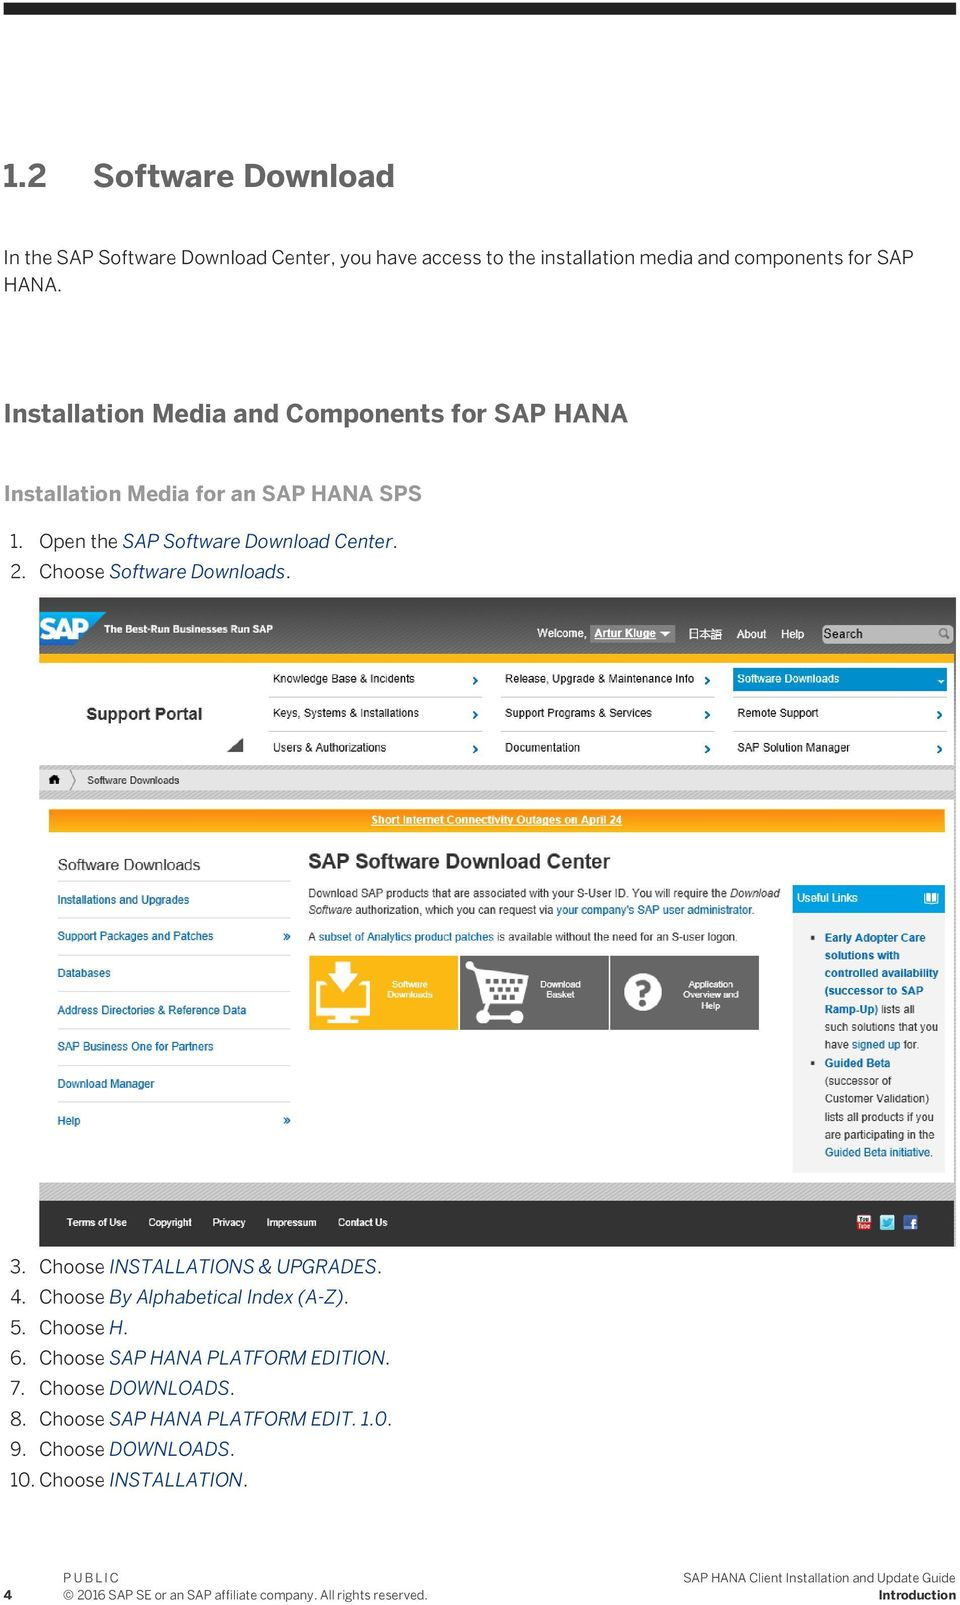 SAP HANA Client Installation and Update Guide - PDF